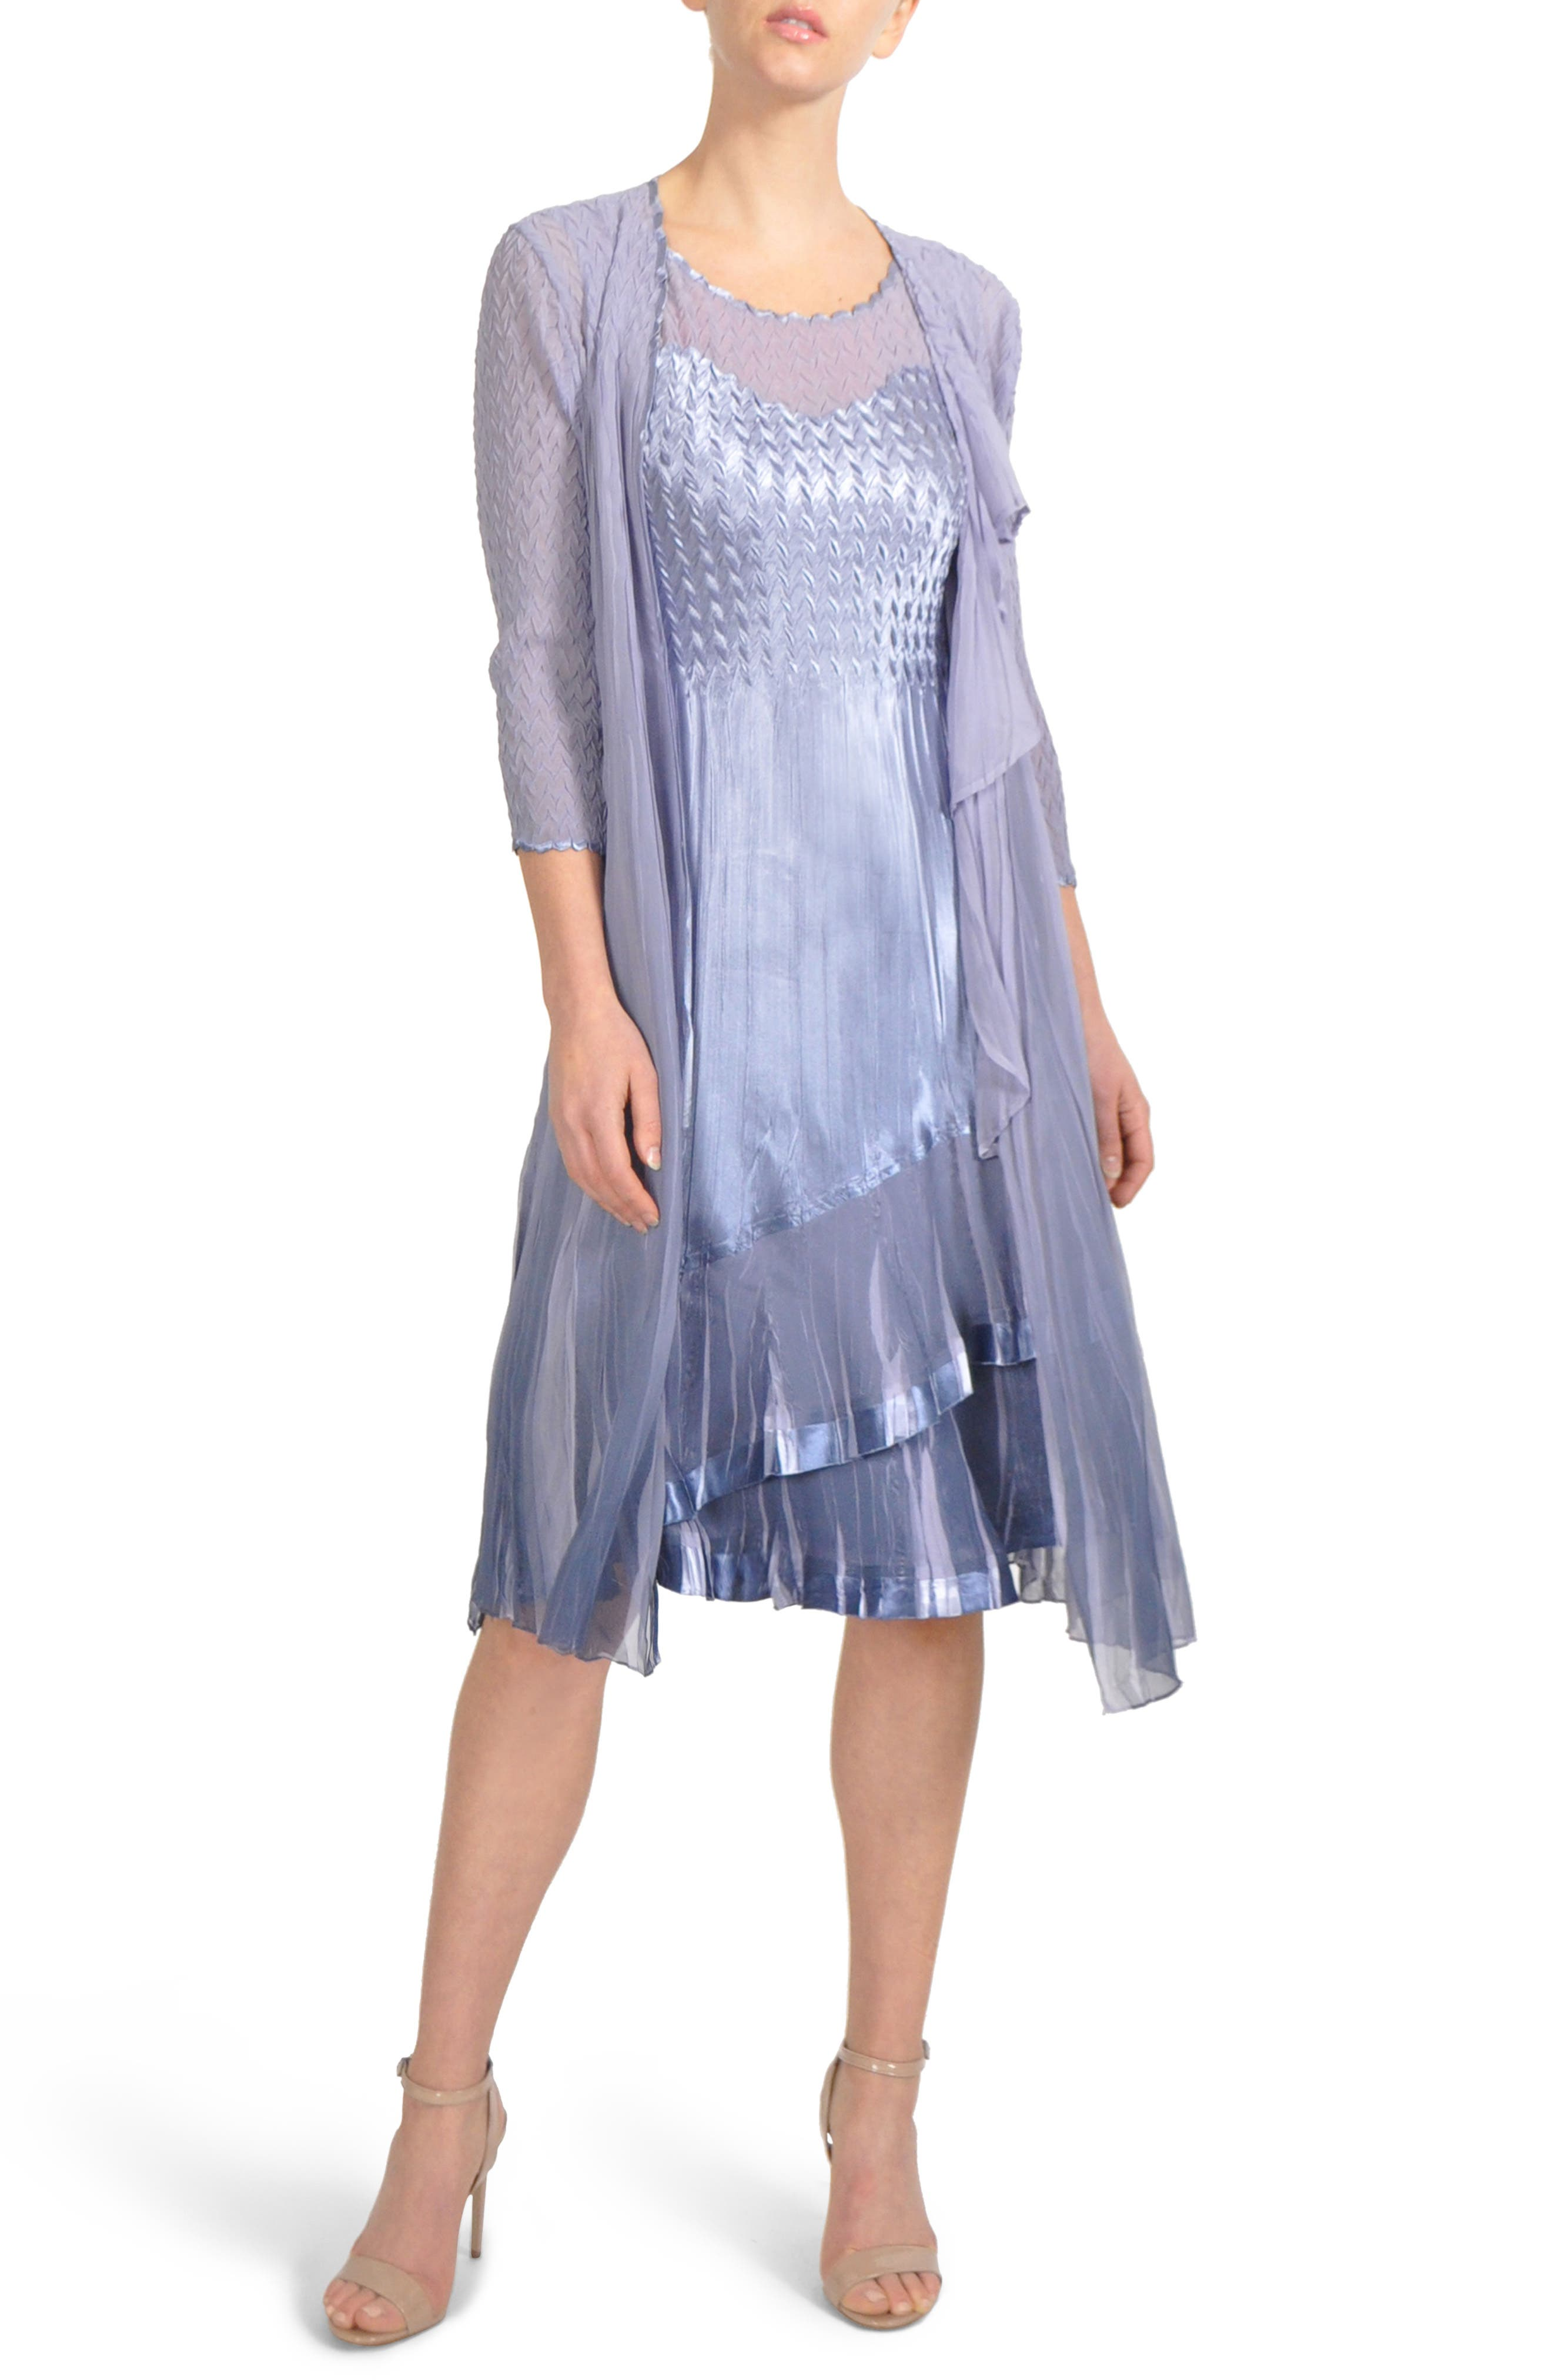 Charmeuse & Chiffon Midi Dress with Jacket,                             Main thumbnail 1, color,                             Lavendar Grey Blue Ombre